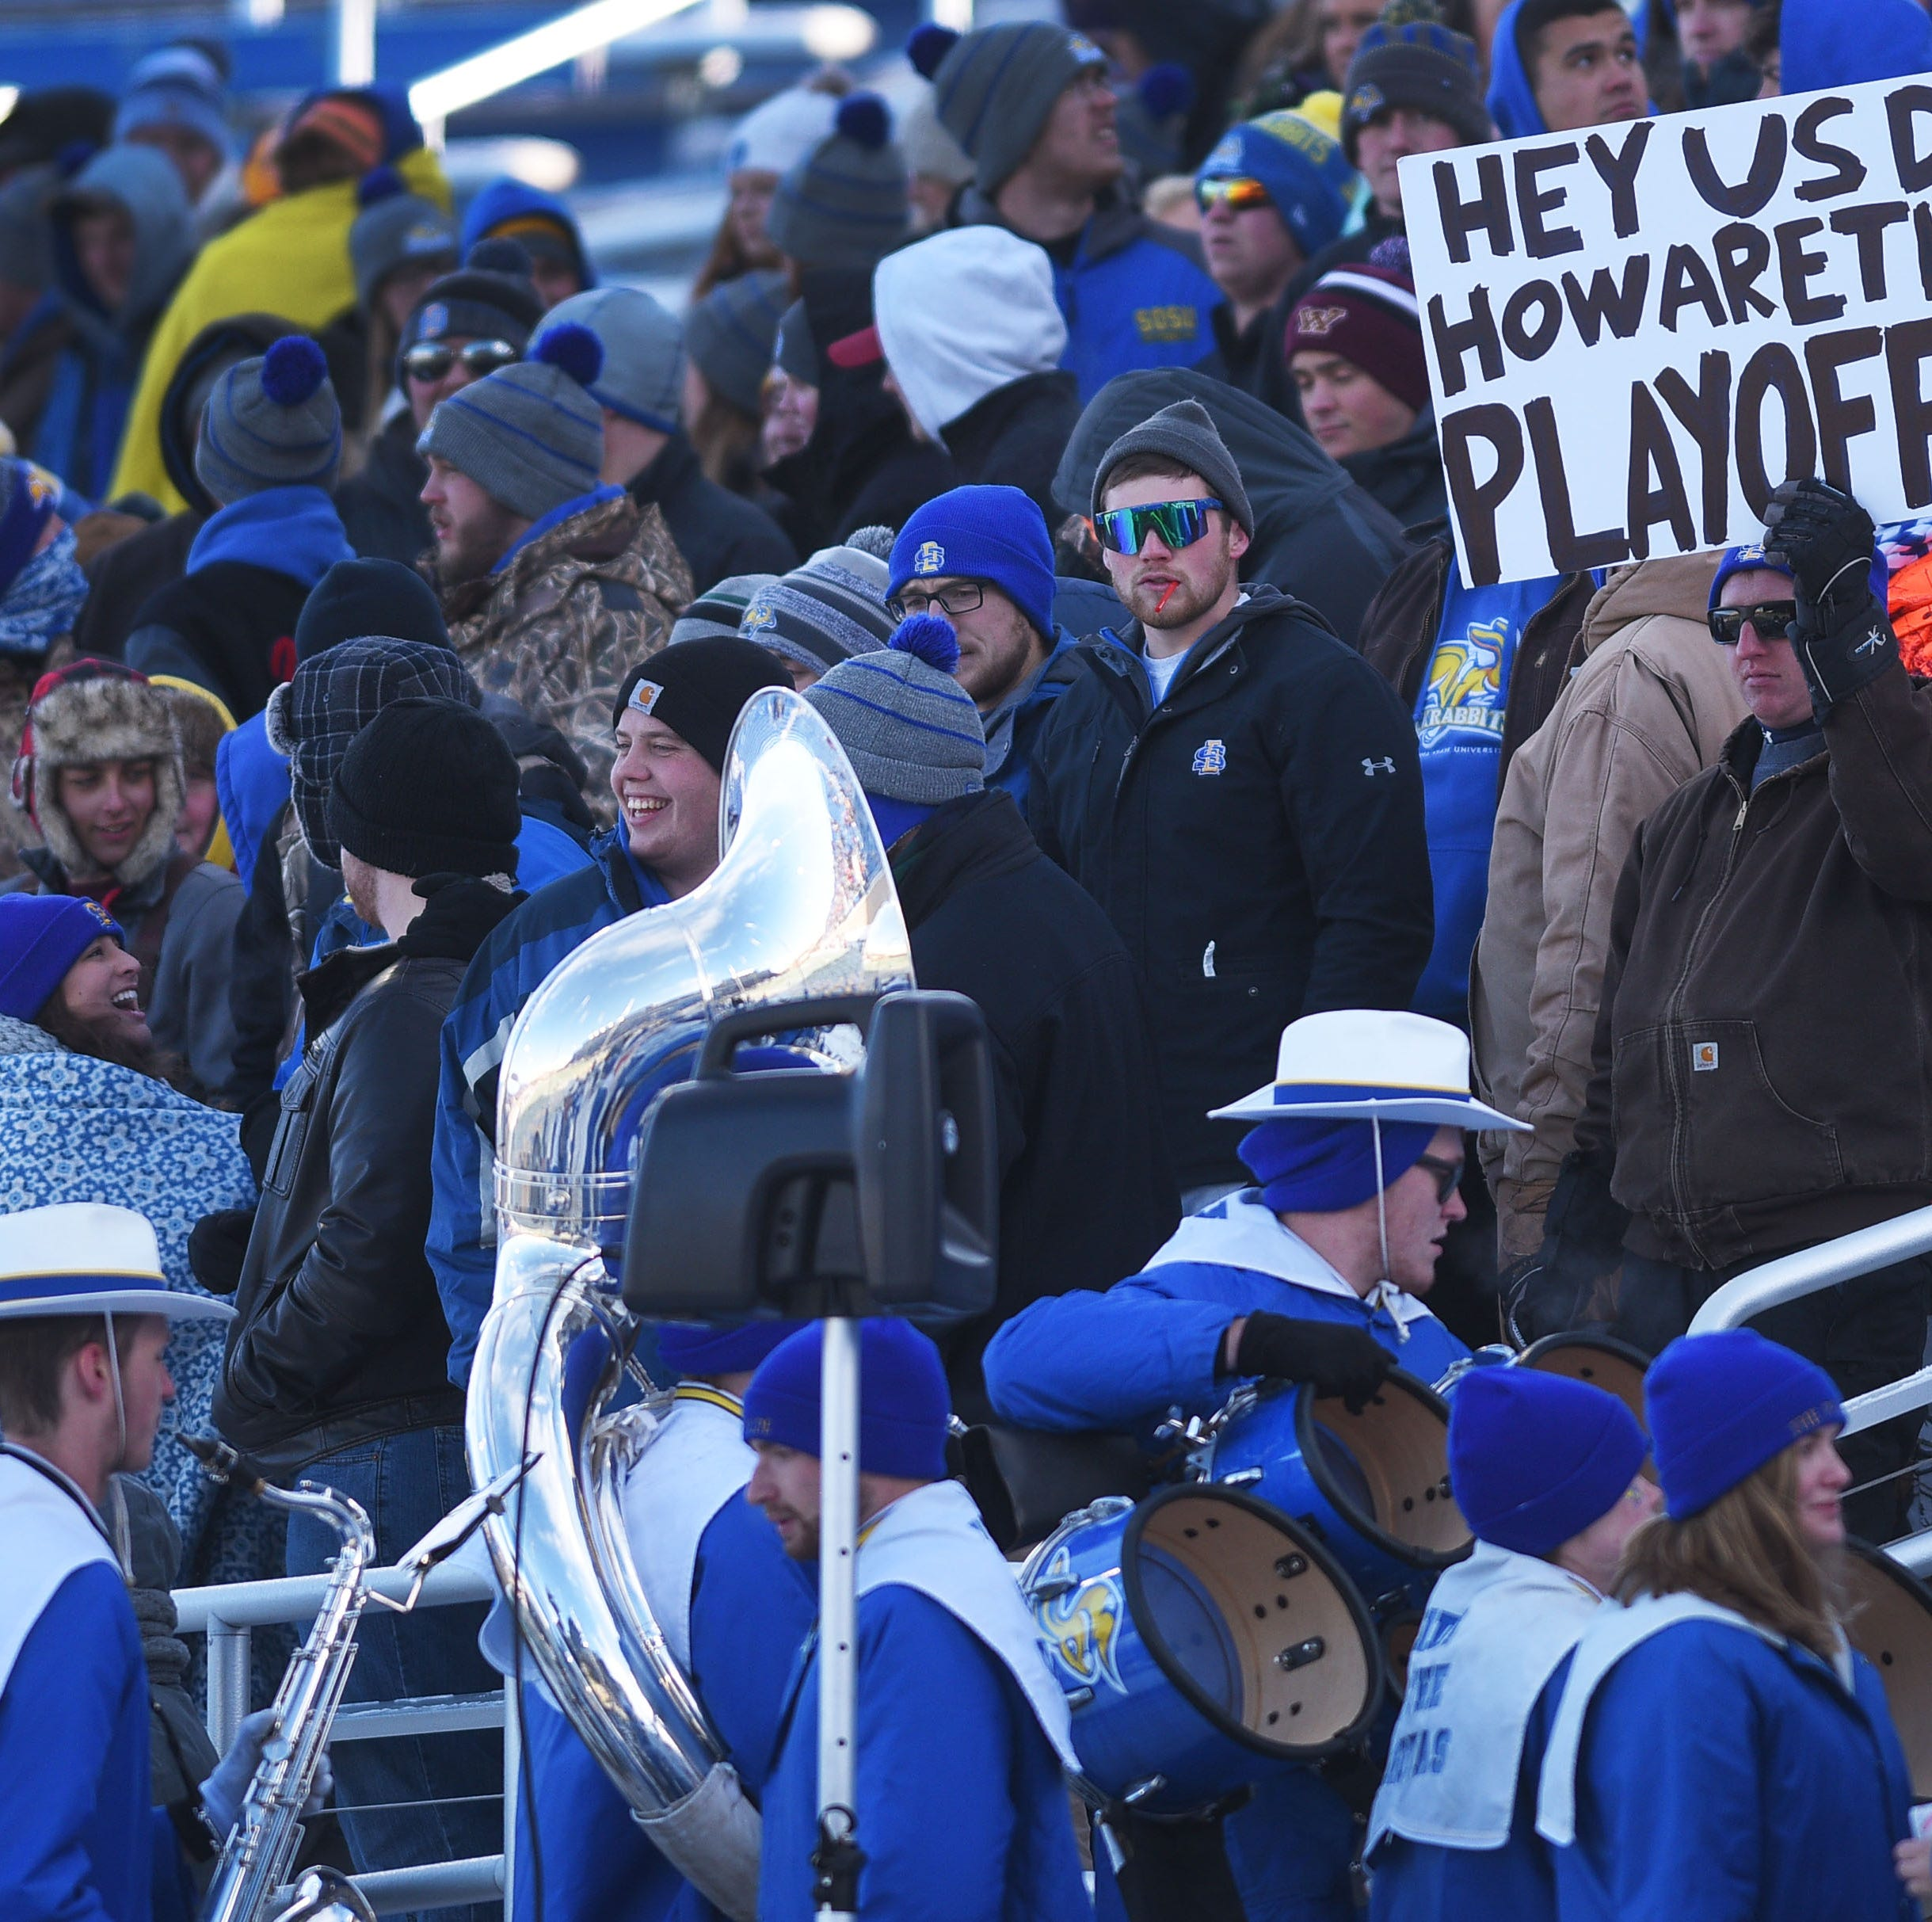 For SDSU Jackrabbits, a question: Who do you hate more — USD or NDSU?